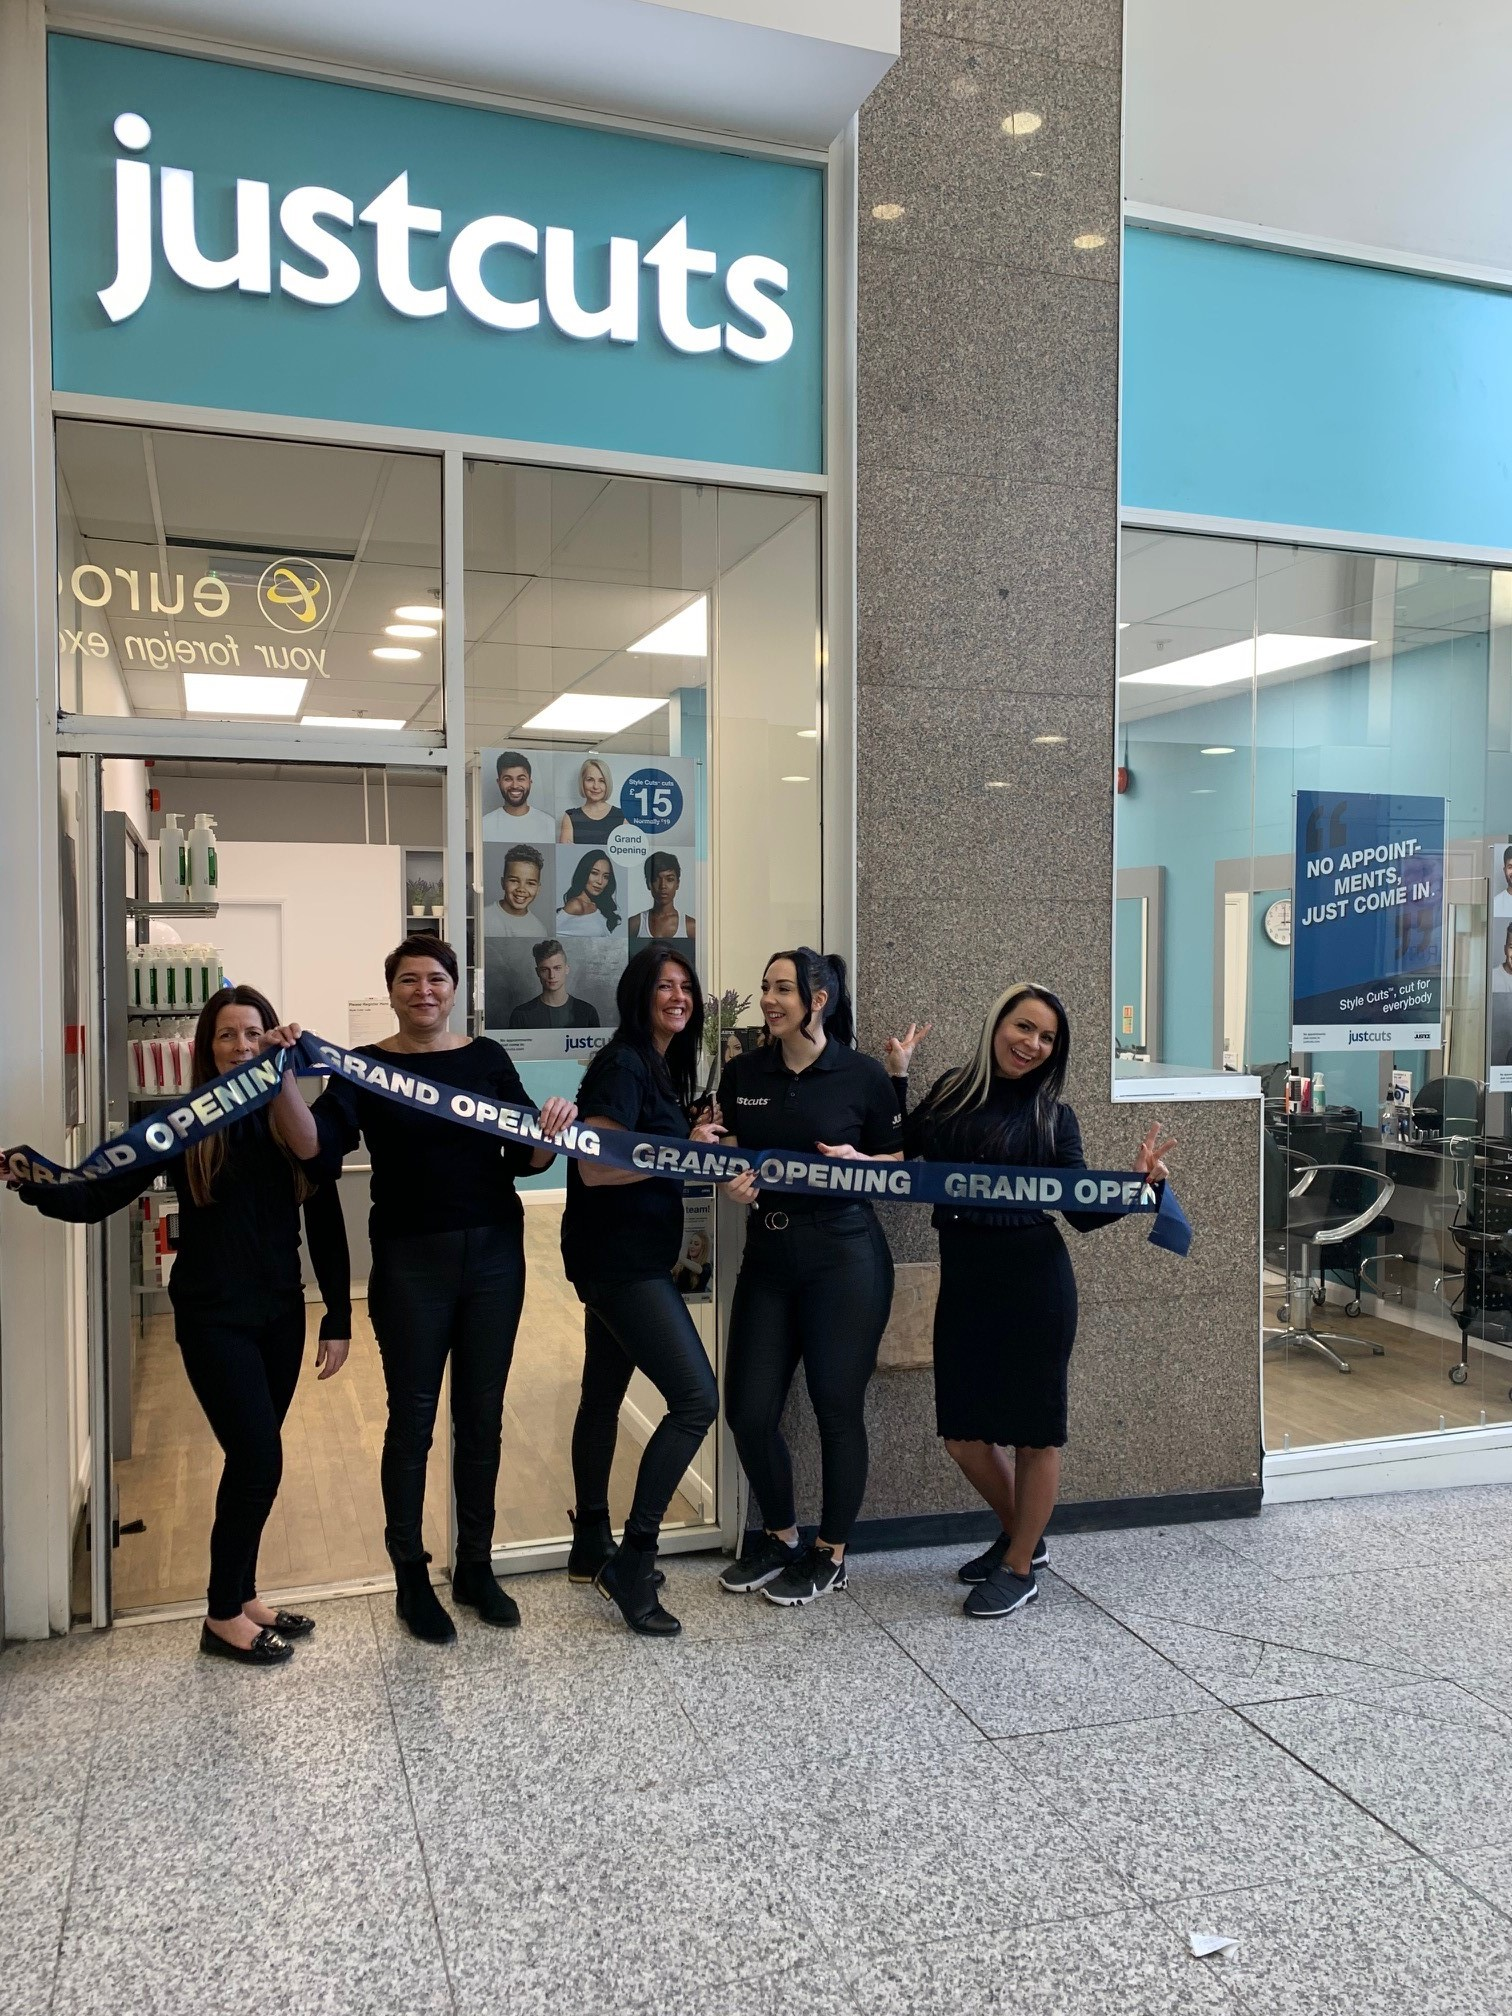 Just Cuts launch